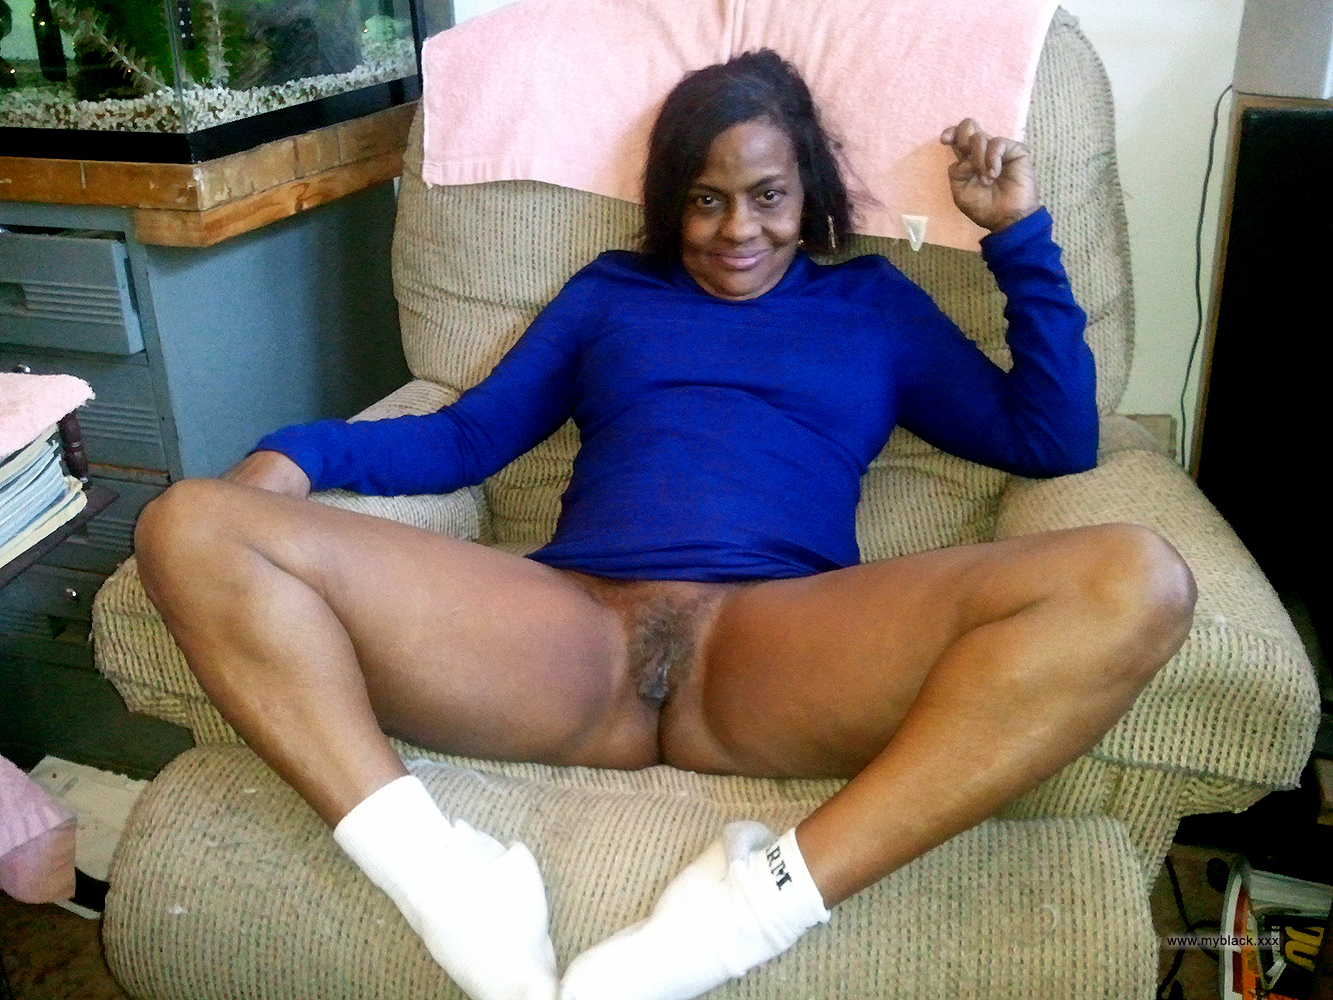 naked mature black woman! just watch! this is arguably the photo #2